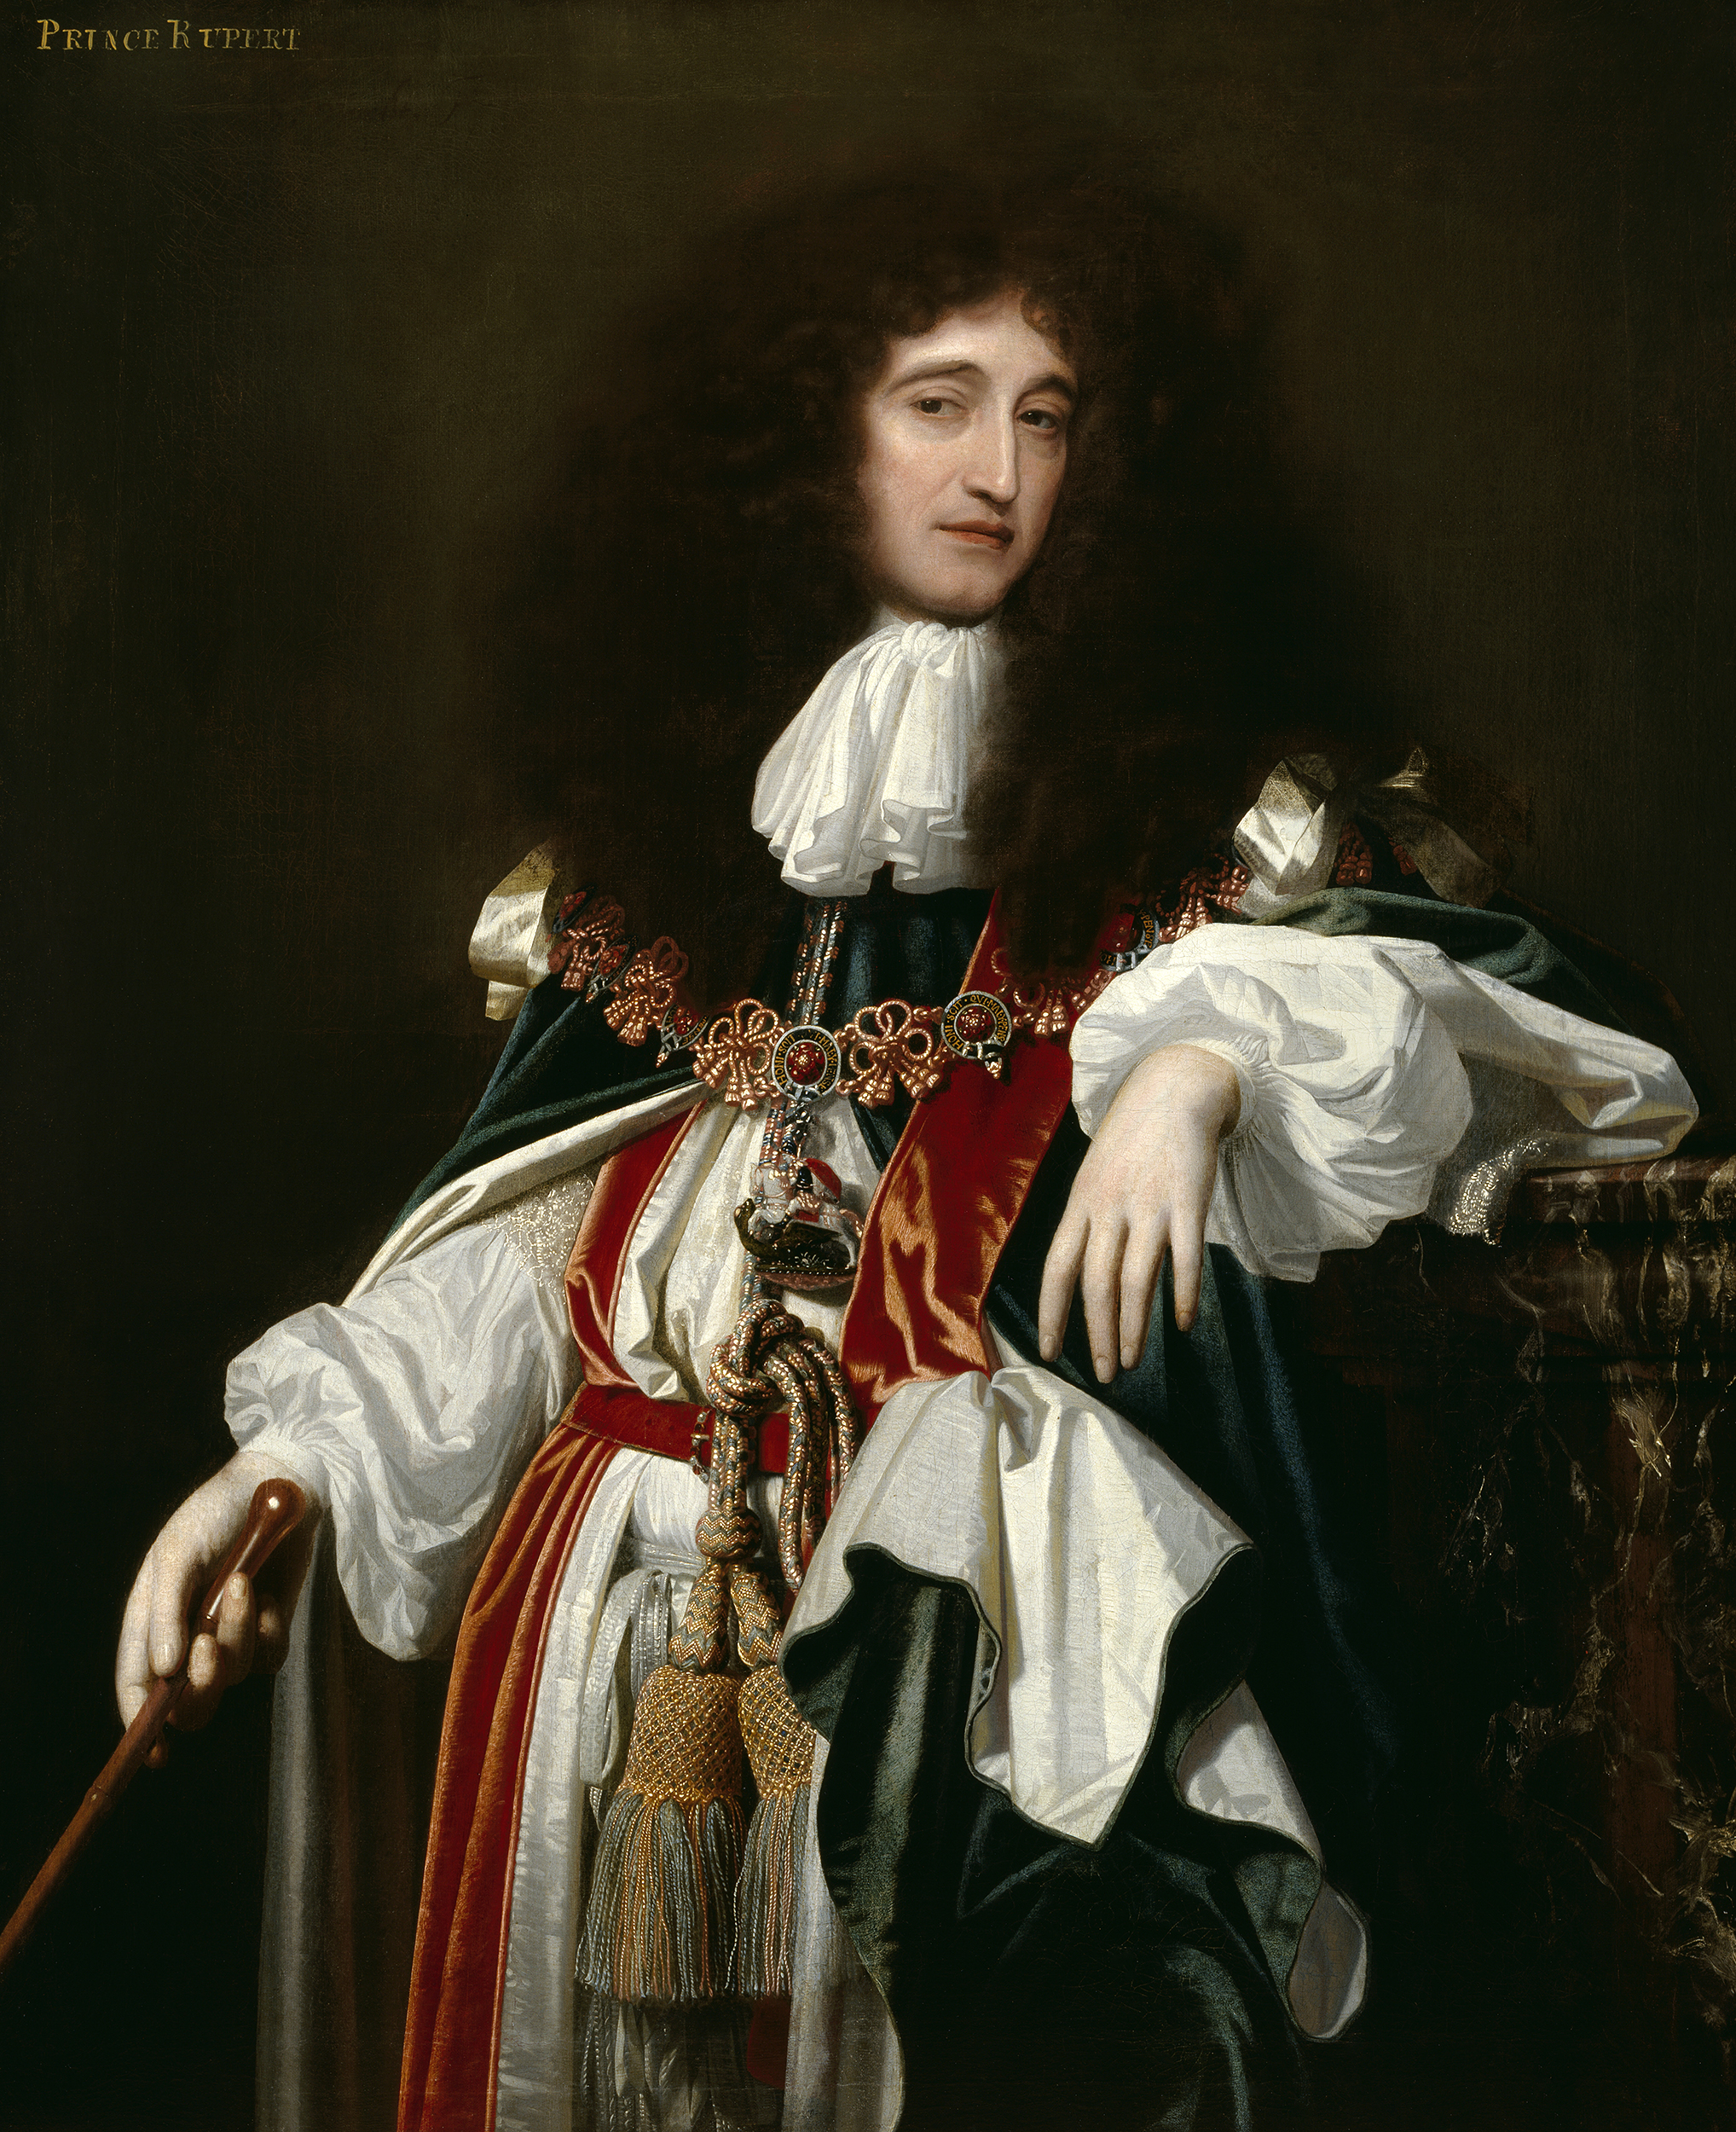 Portrait of Rupert of the Rhine (1619-1682), Prince, Count Palatine; Duke of Cumberland (1644), appointed to the King's Privy Council in 1662, Lord High Admiral of England (1668-1682) | Portraits of Kings